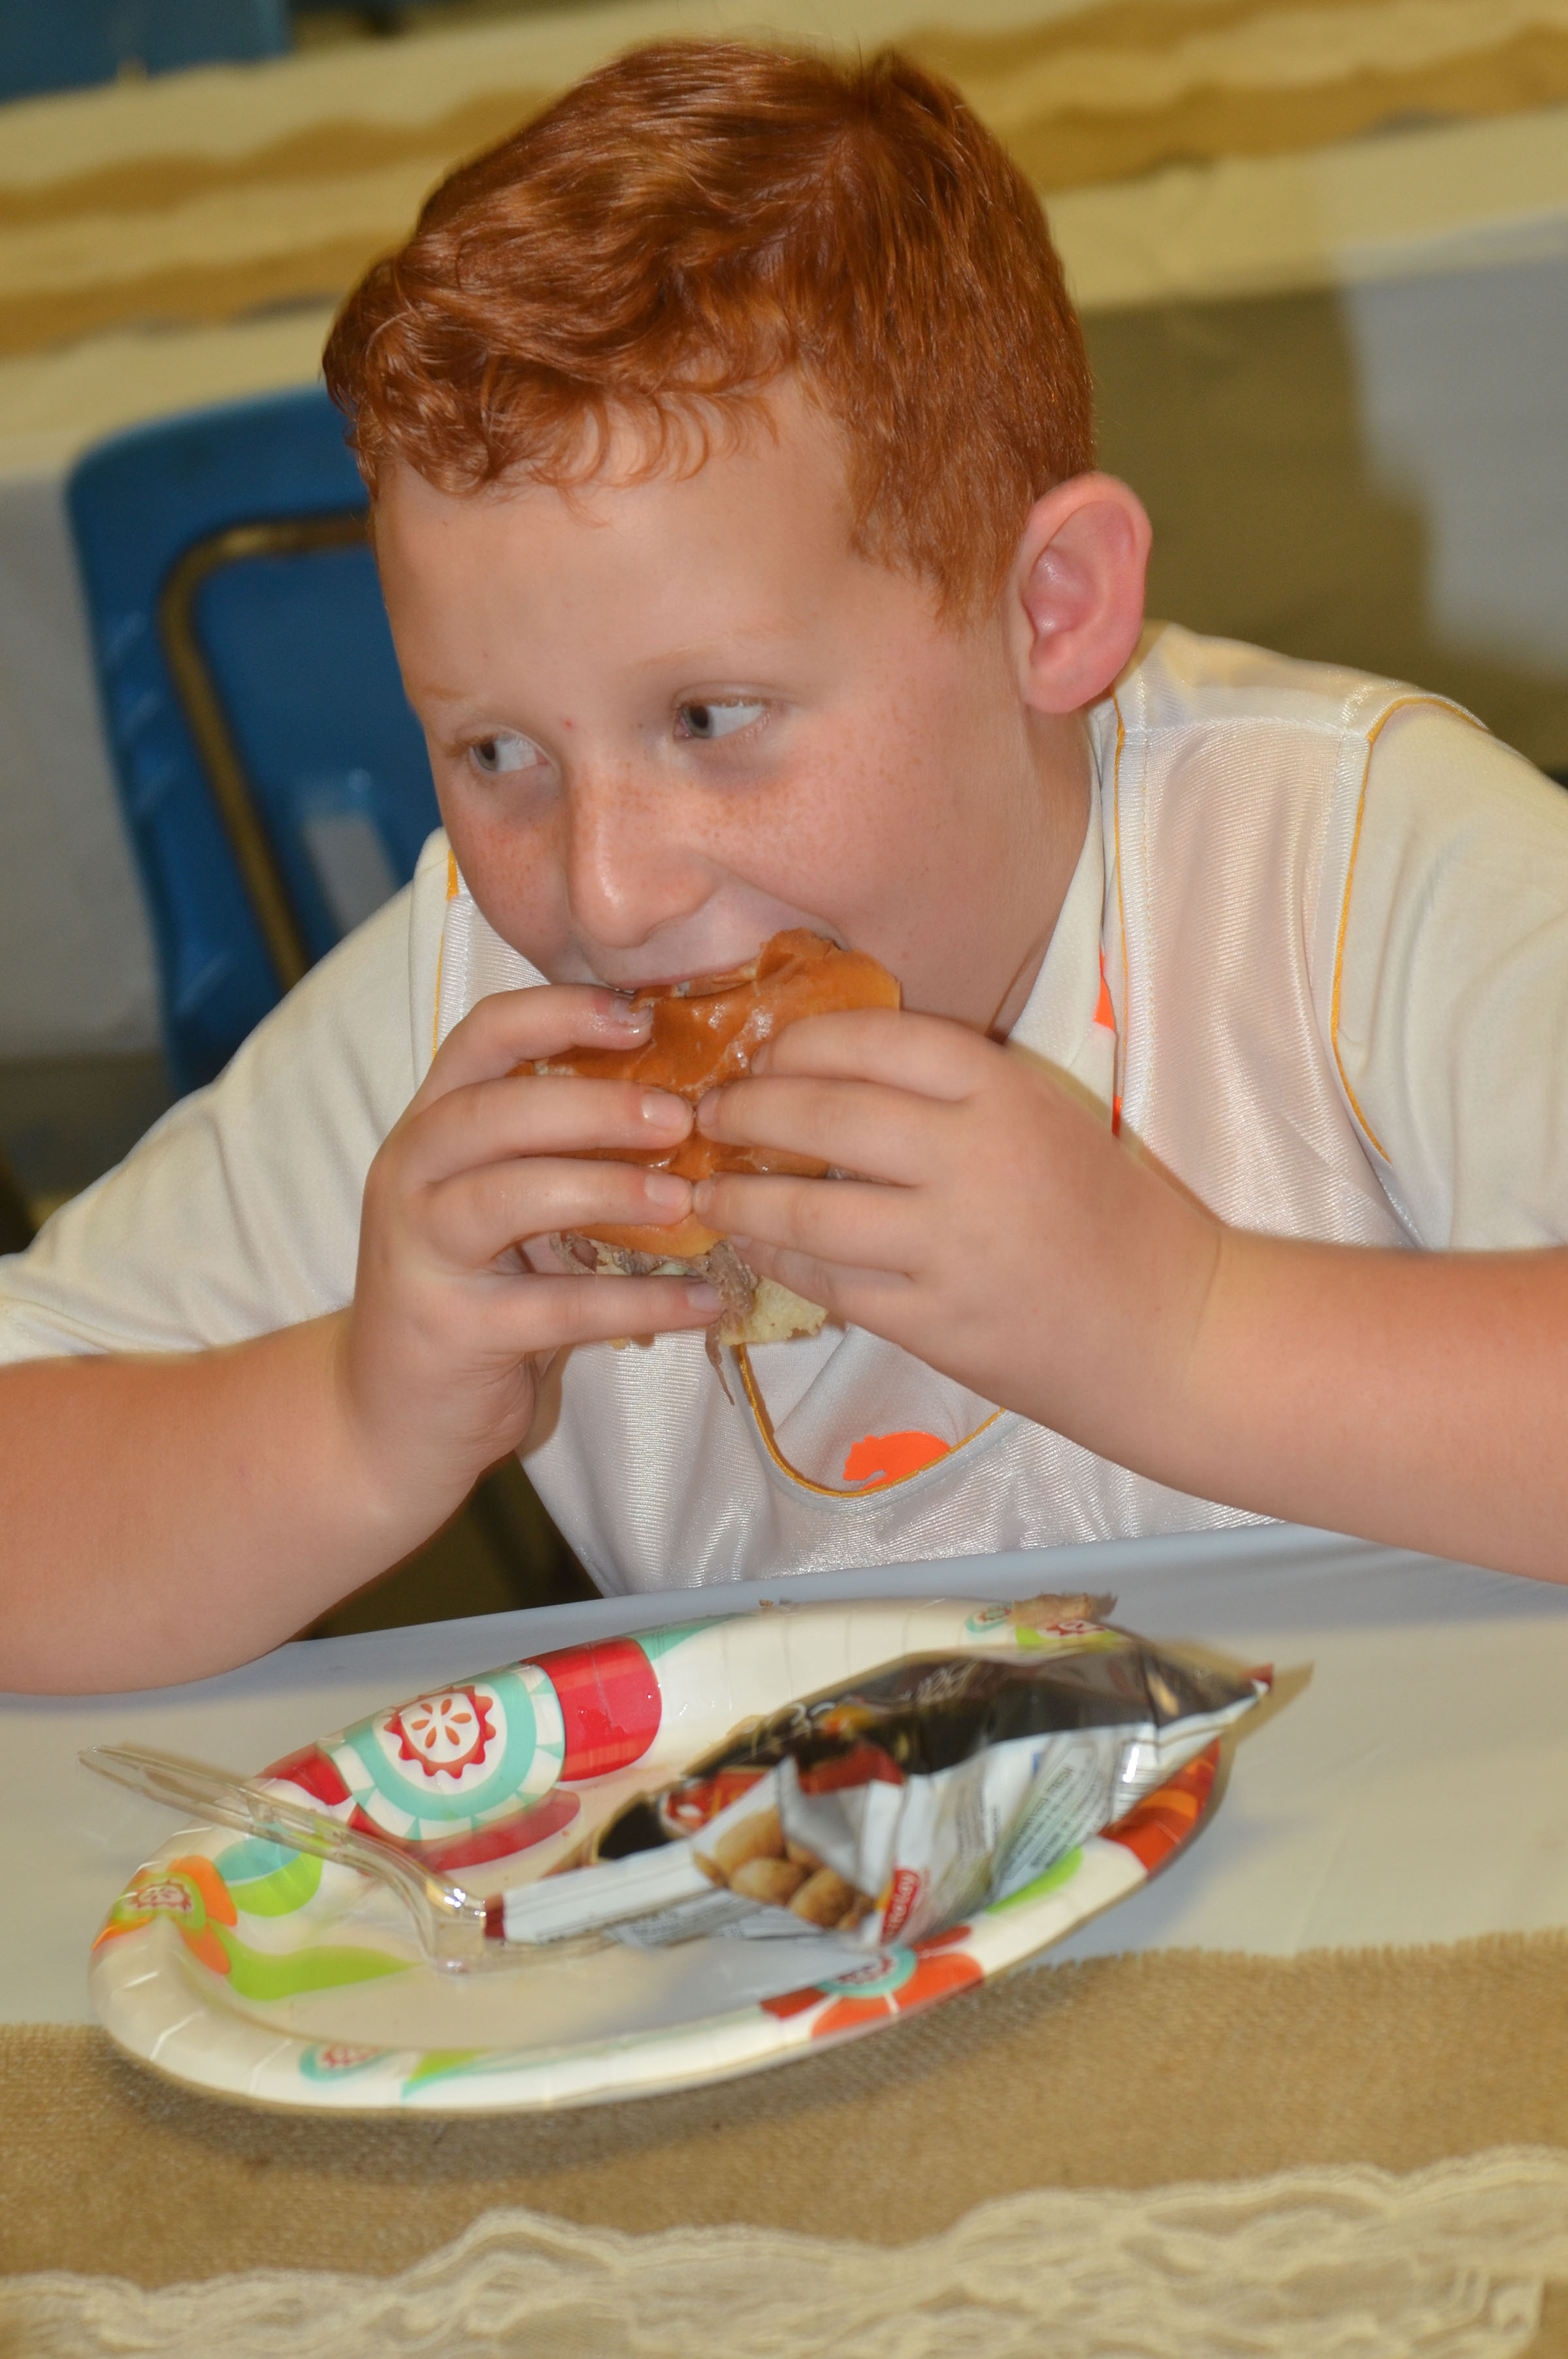 Campbellsville Elementary School second-grader Reece Swafford takes a bite of his barbecue sandwich.